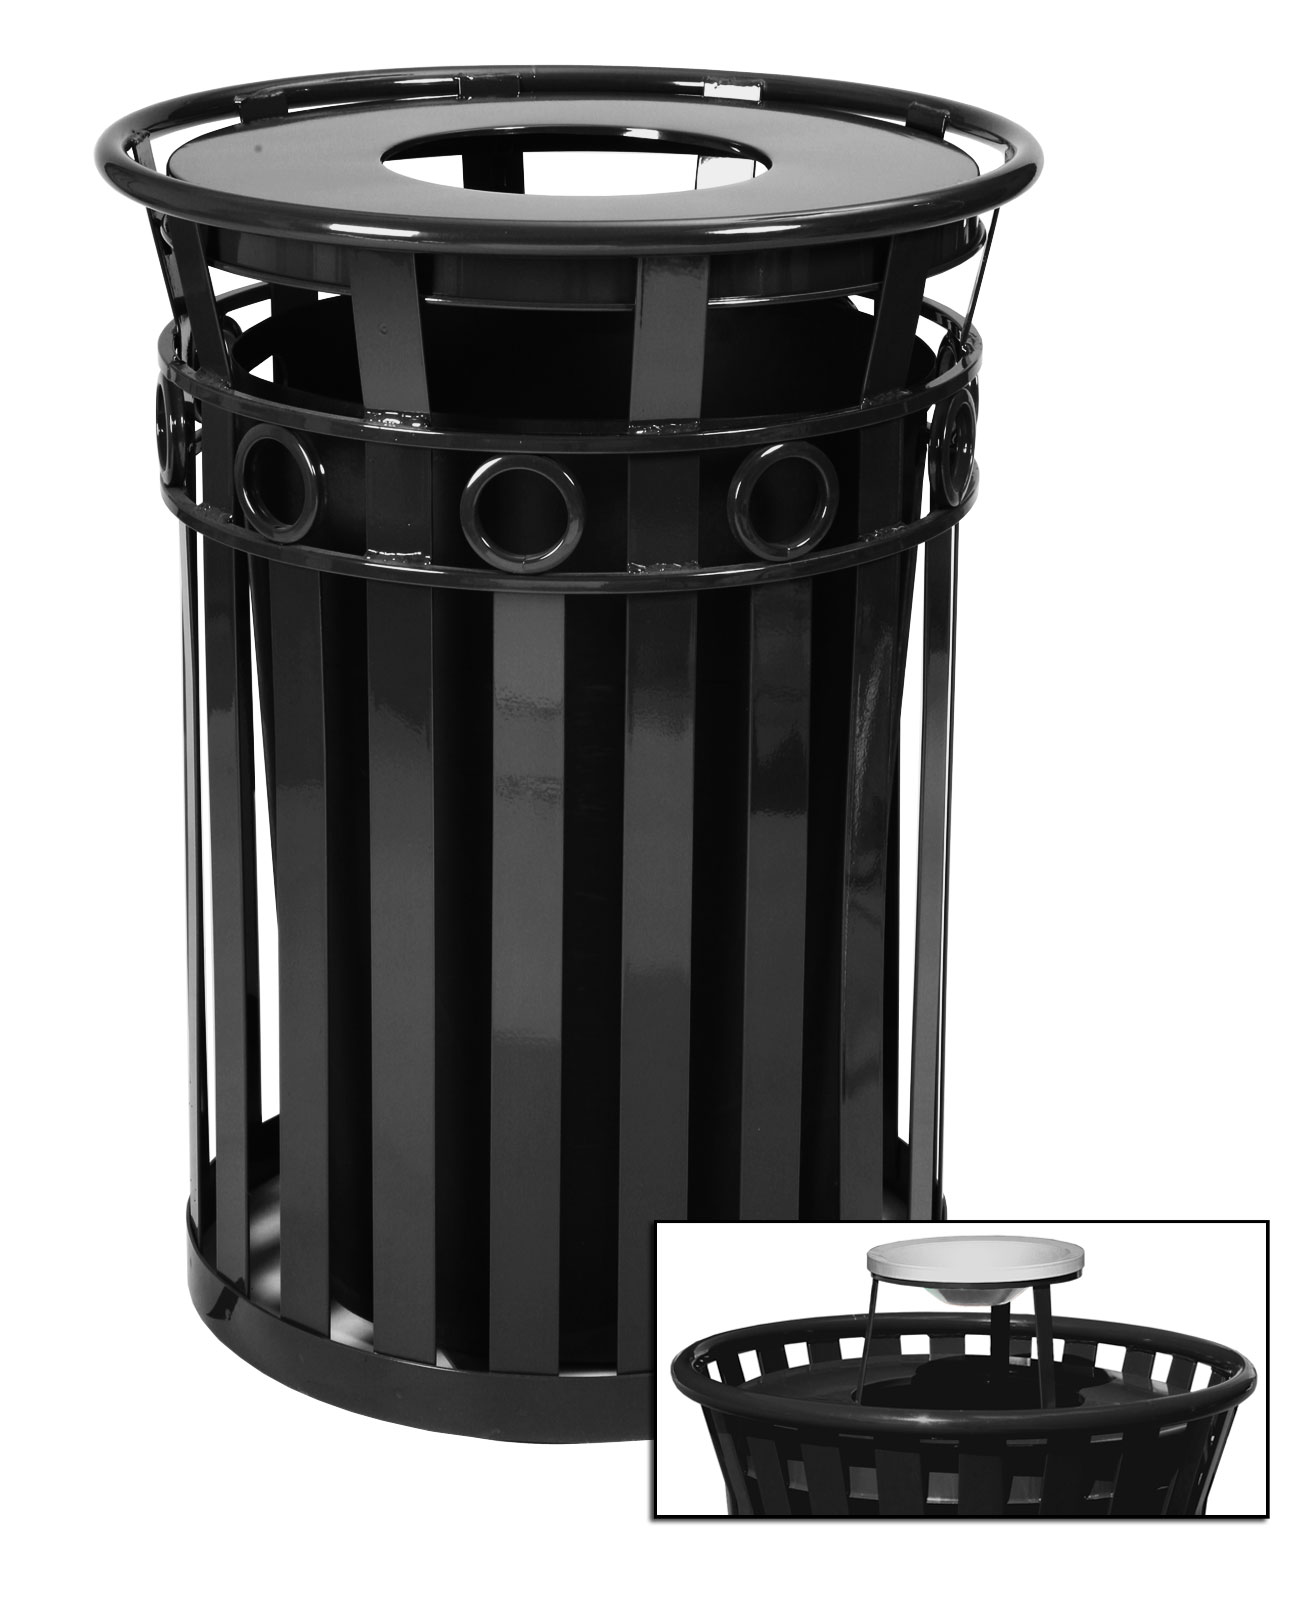 Oakley 40 Gallon Decorative Waste Receptacle p 379 besides Kaleidoscope Three Stream  bo Waste And Recycling Station p 1378 further Metal Garden Arch also Glazed Navy Leather Desk Pad additionally 27232772721200819. on decorative trash cans